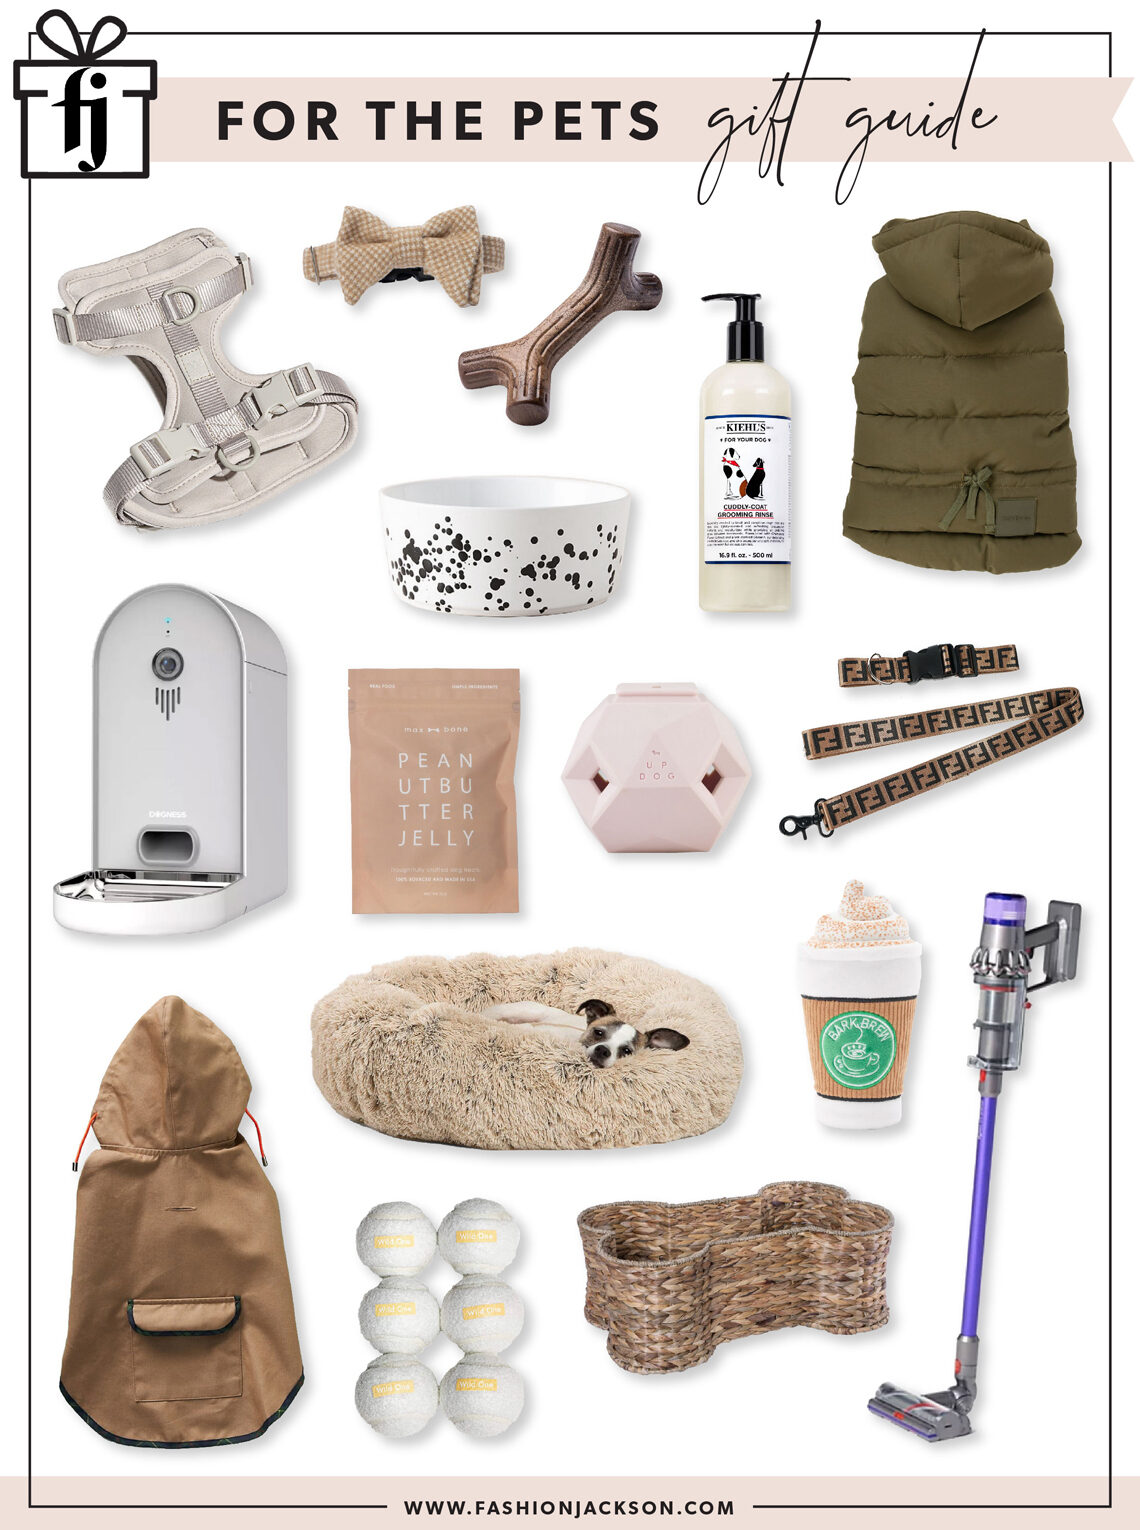 Fashion Jackson Holiday 2020 Pet Gift Guide